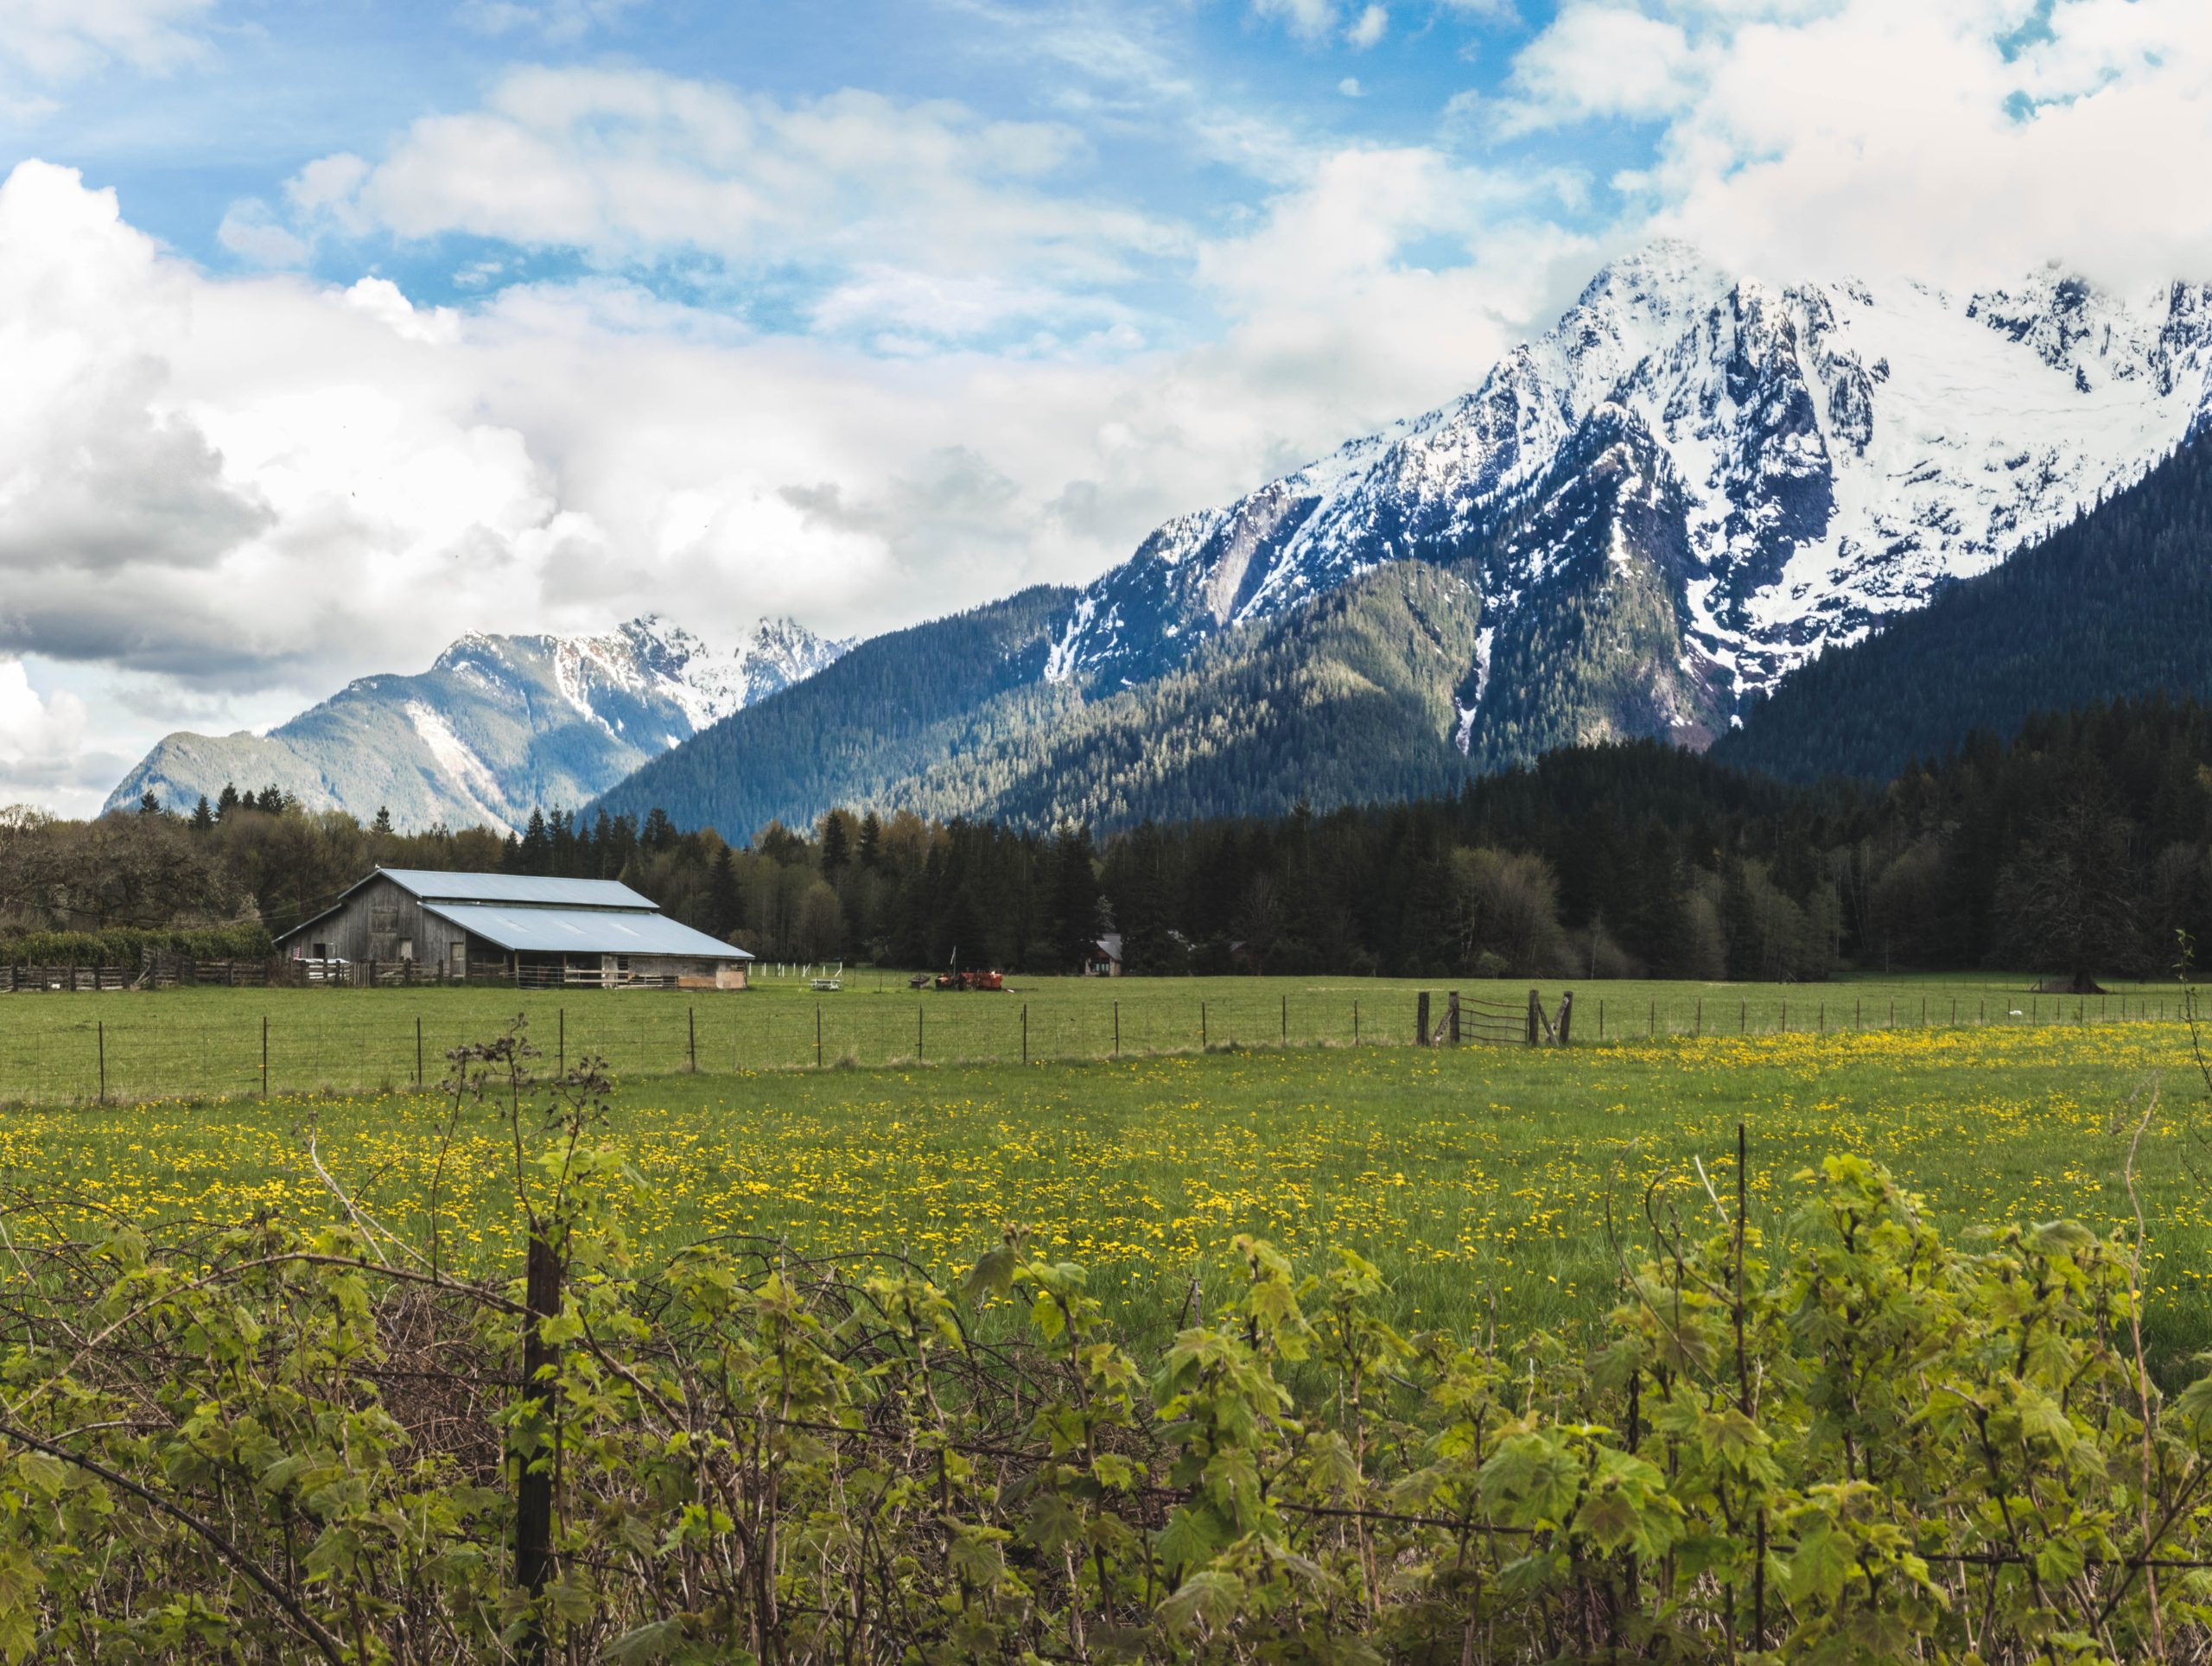 Pasture and Barn Against the Backdrop of a Mountain - Farm Background Wallpaper Pictures